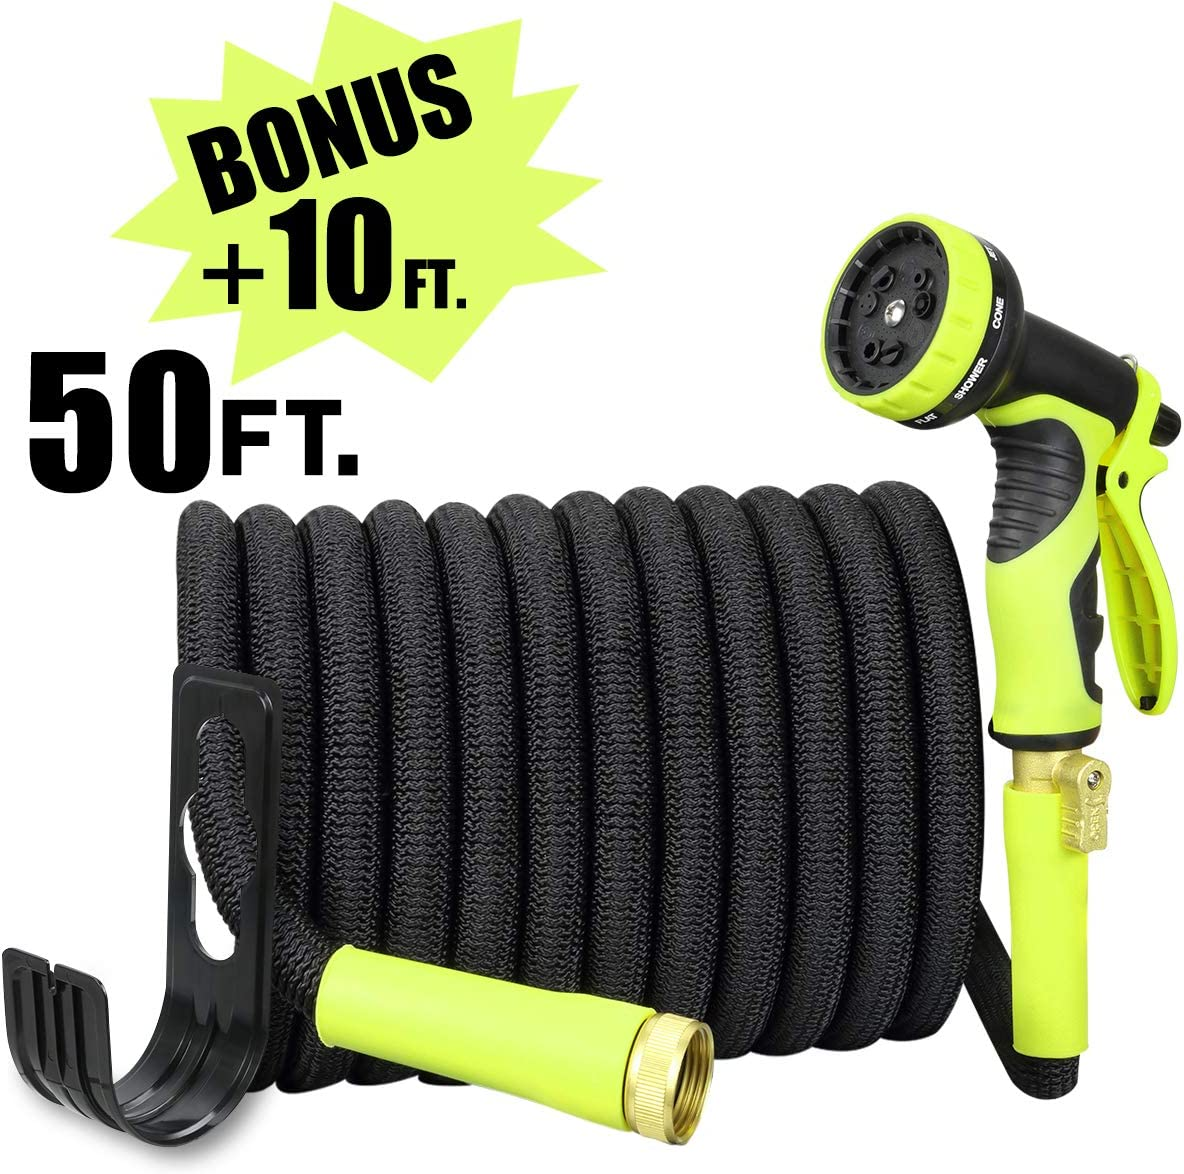 Sunflora 50 ft Expandable Garden Hose Bonus 10 feet with Solid Brass Fittings and 9 Patterns Spray Nozzle, Flexible No Kink Water Hoses for Lawn Total 60 Feet